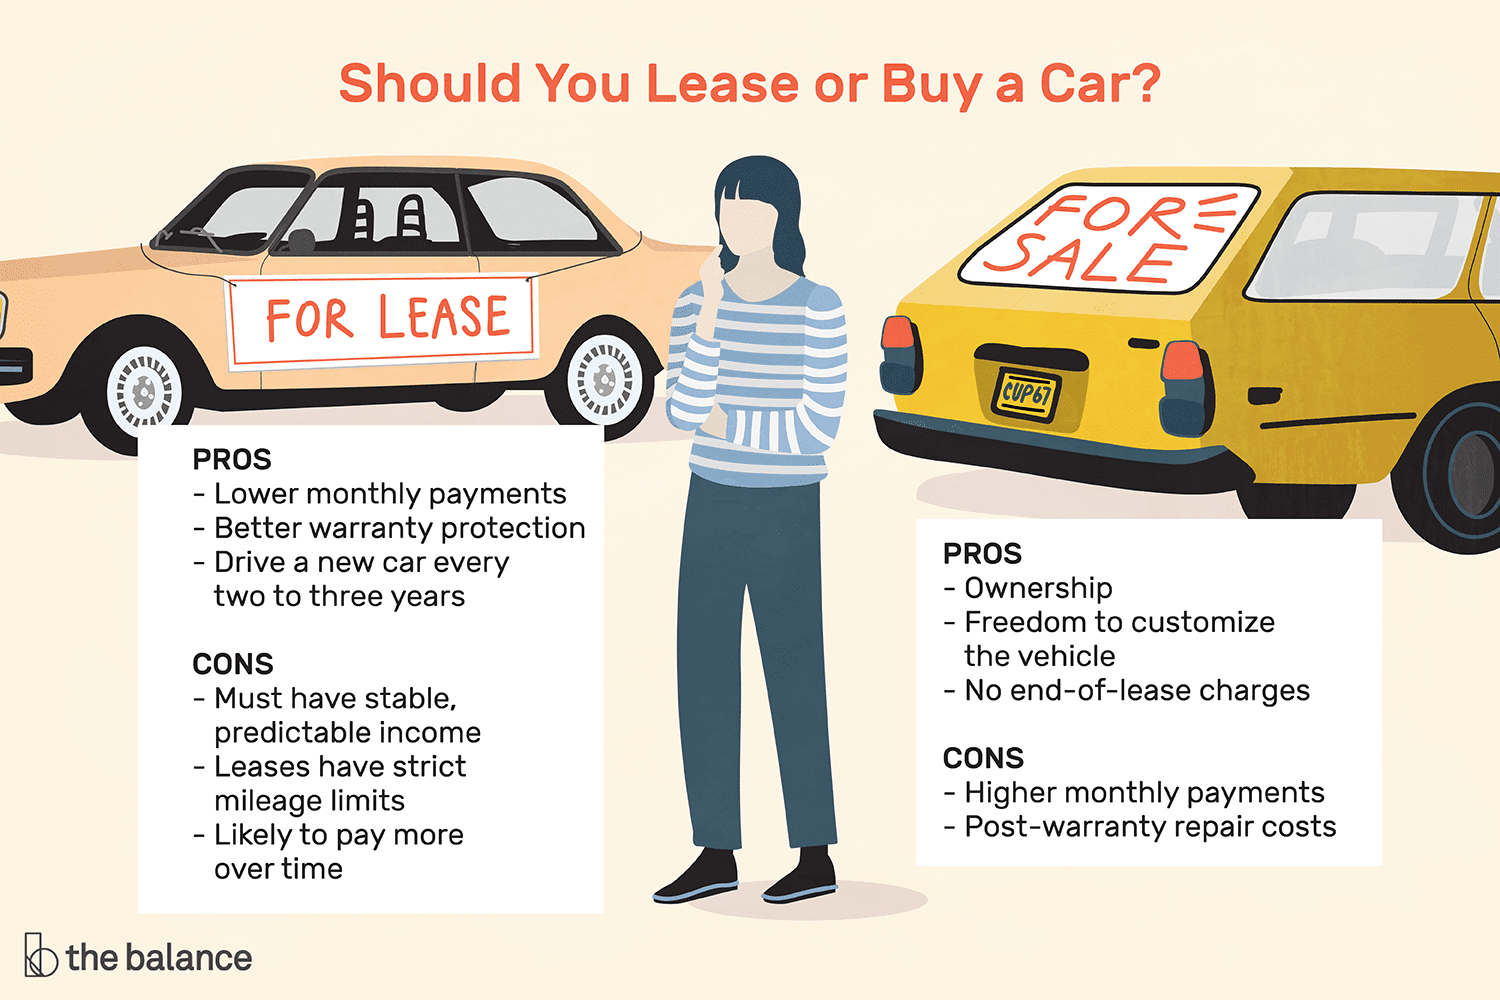 Should You Lease or Buy Your Next Car? Car, Car buying